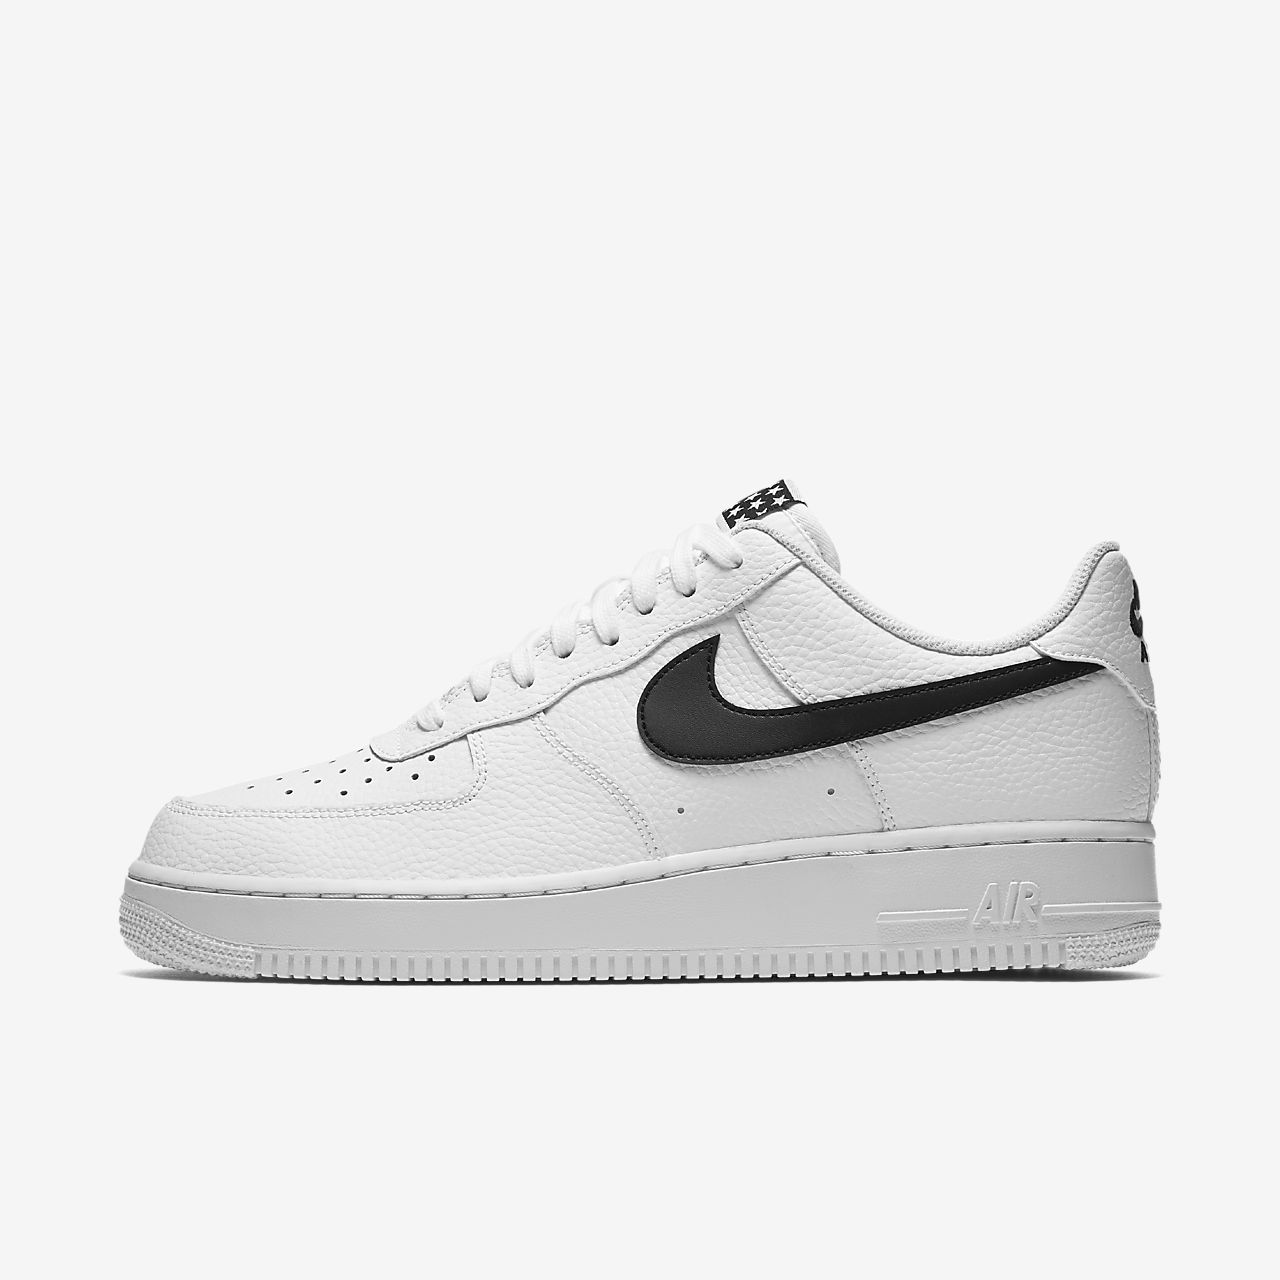 NIKE AIR FORCE 1 ONE '07 WHITE BLACK AA4083-103